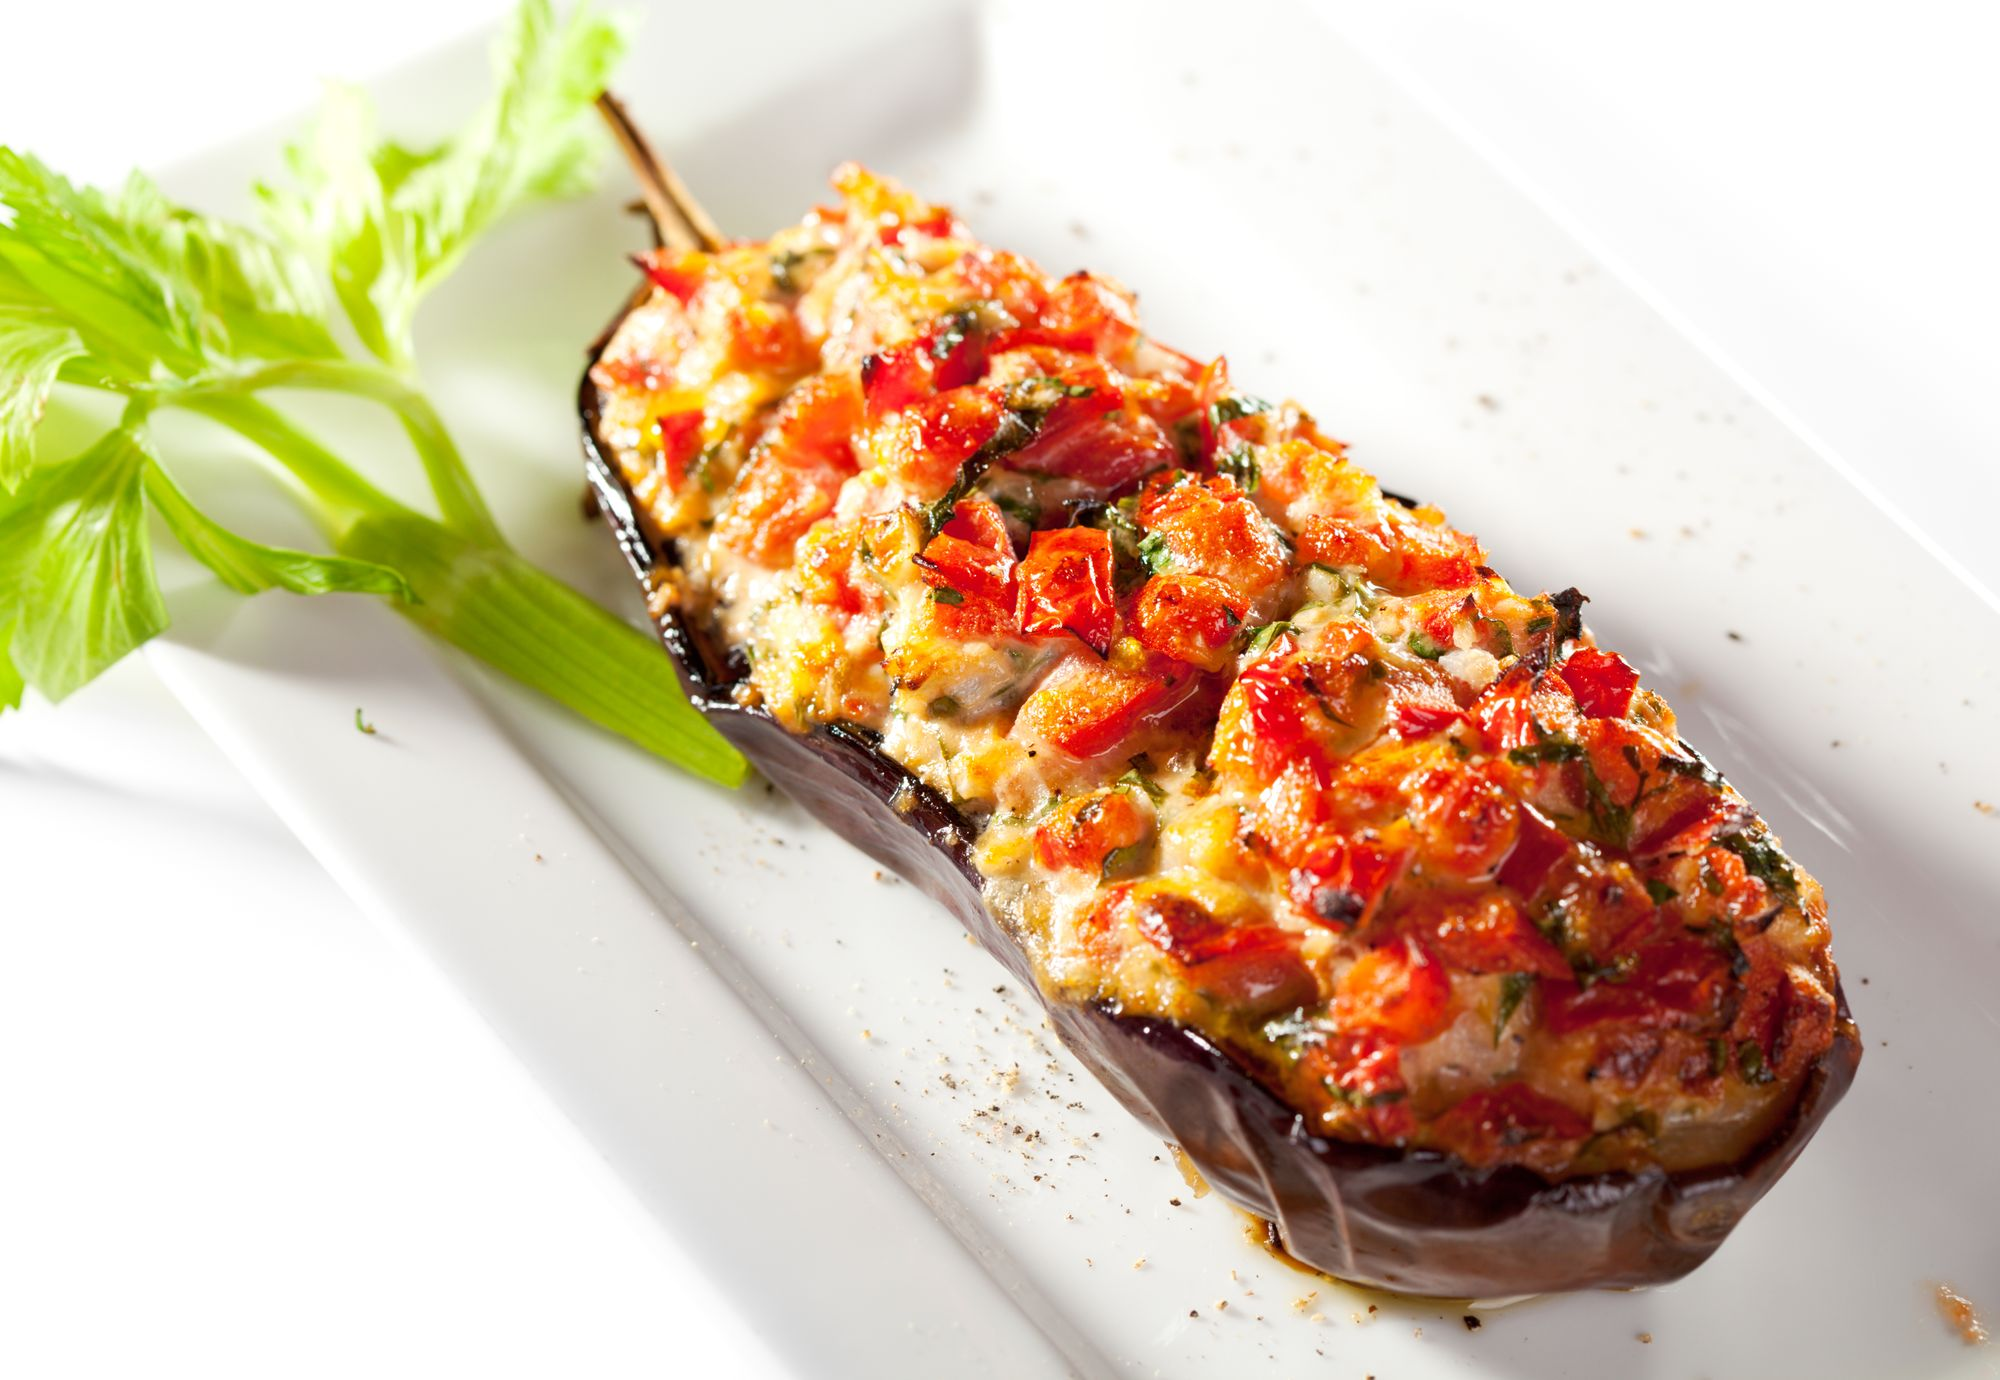 Roquefort Stuffed Eggplant